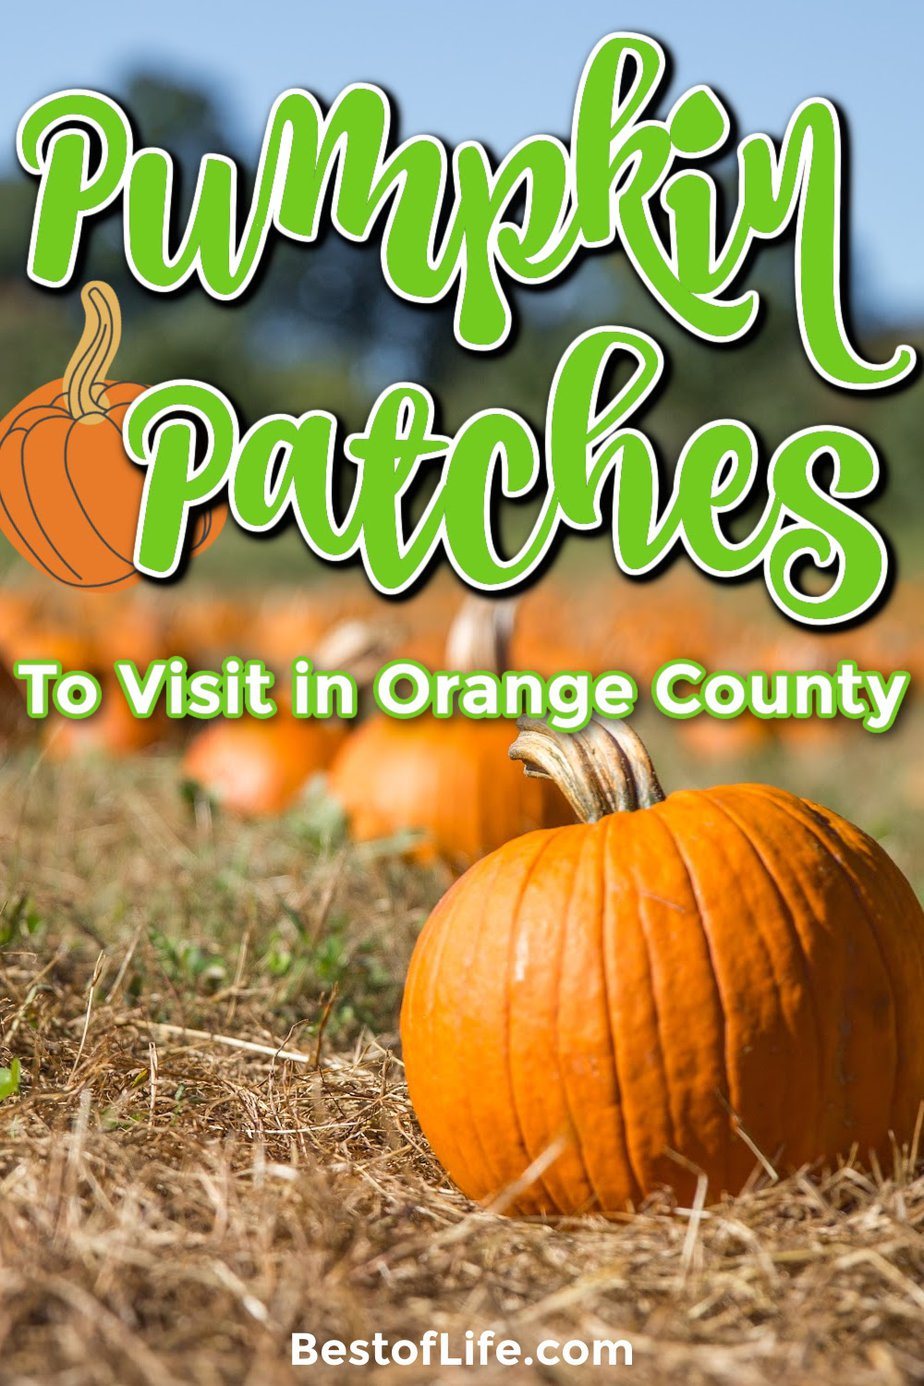 Visit the best pumpkin patches in Orange County for a fun filled day of fall traditions like picking pumpkins, enjoying fall foods, hay rides, and more. Things to do in October in Orange County | October Family Activities | Orange County Pumpkin Patches | Fall Activities | Halloween Activities Orange County | Orange County Halloween | Things to do in Fall #halloween #orangecounty via @thebestoflife